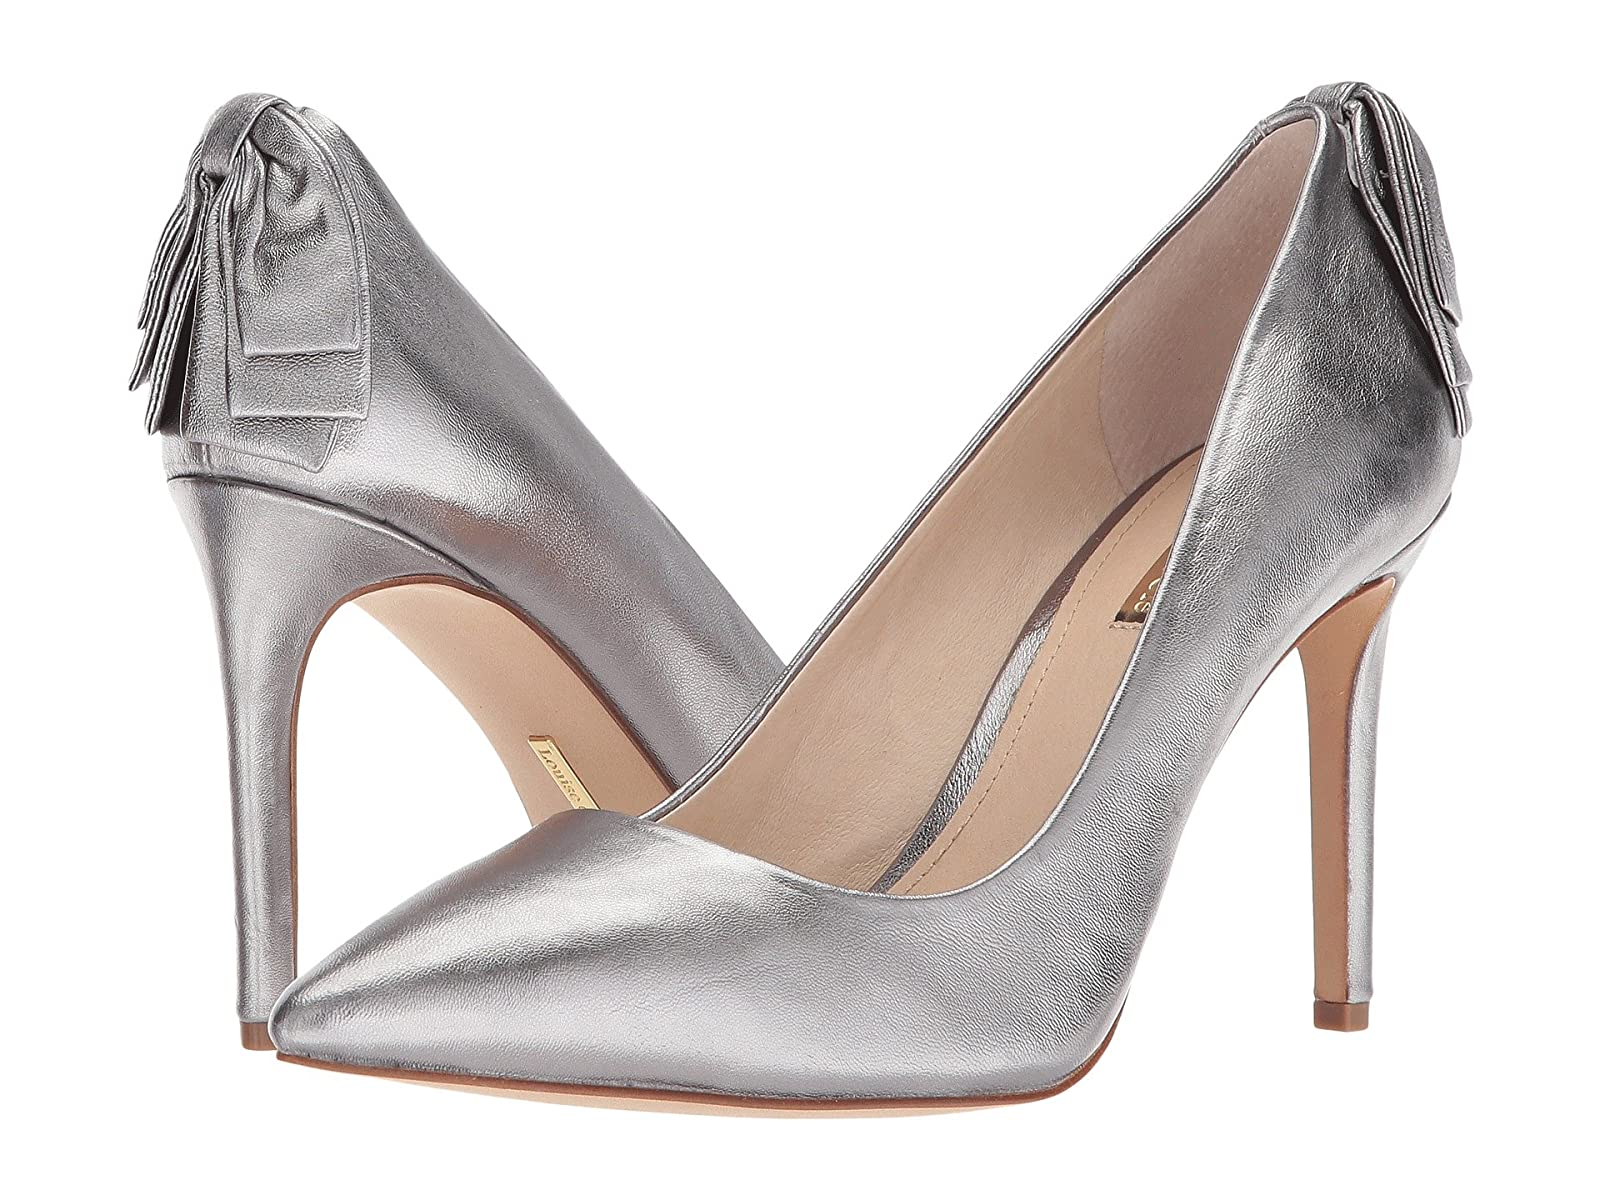 Louise et Cie JoselyCheap and distinctive eye-catching shoes